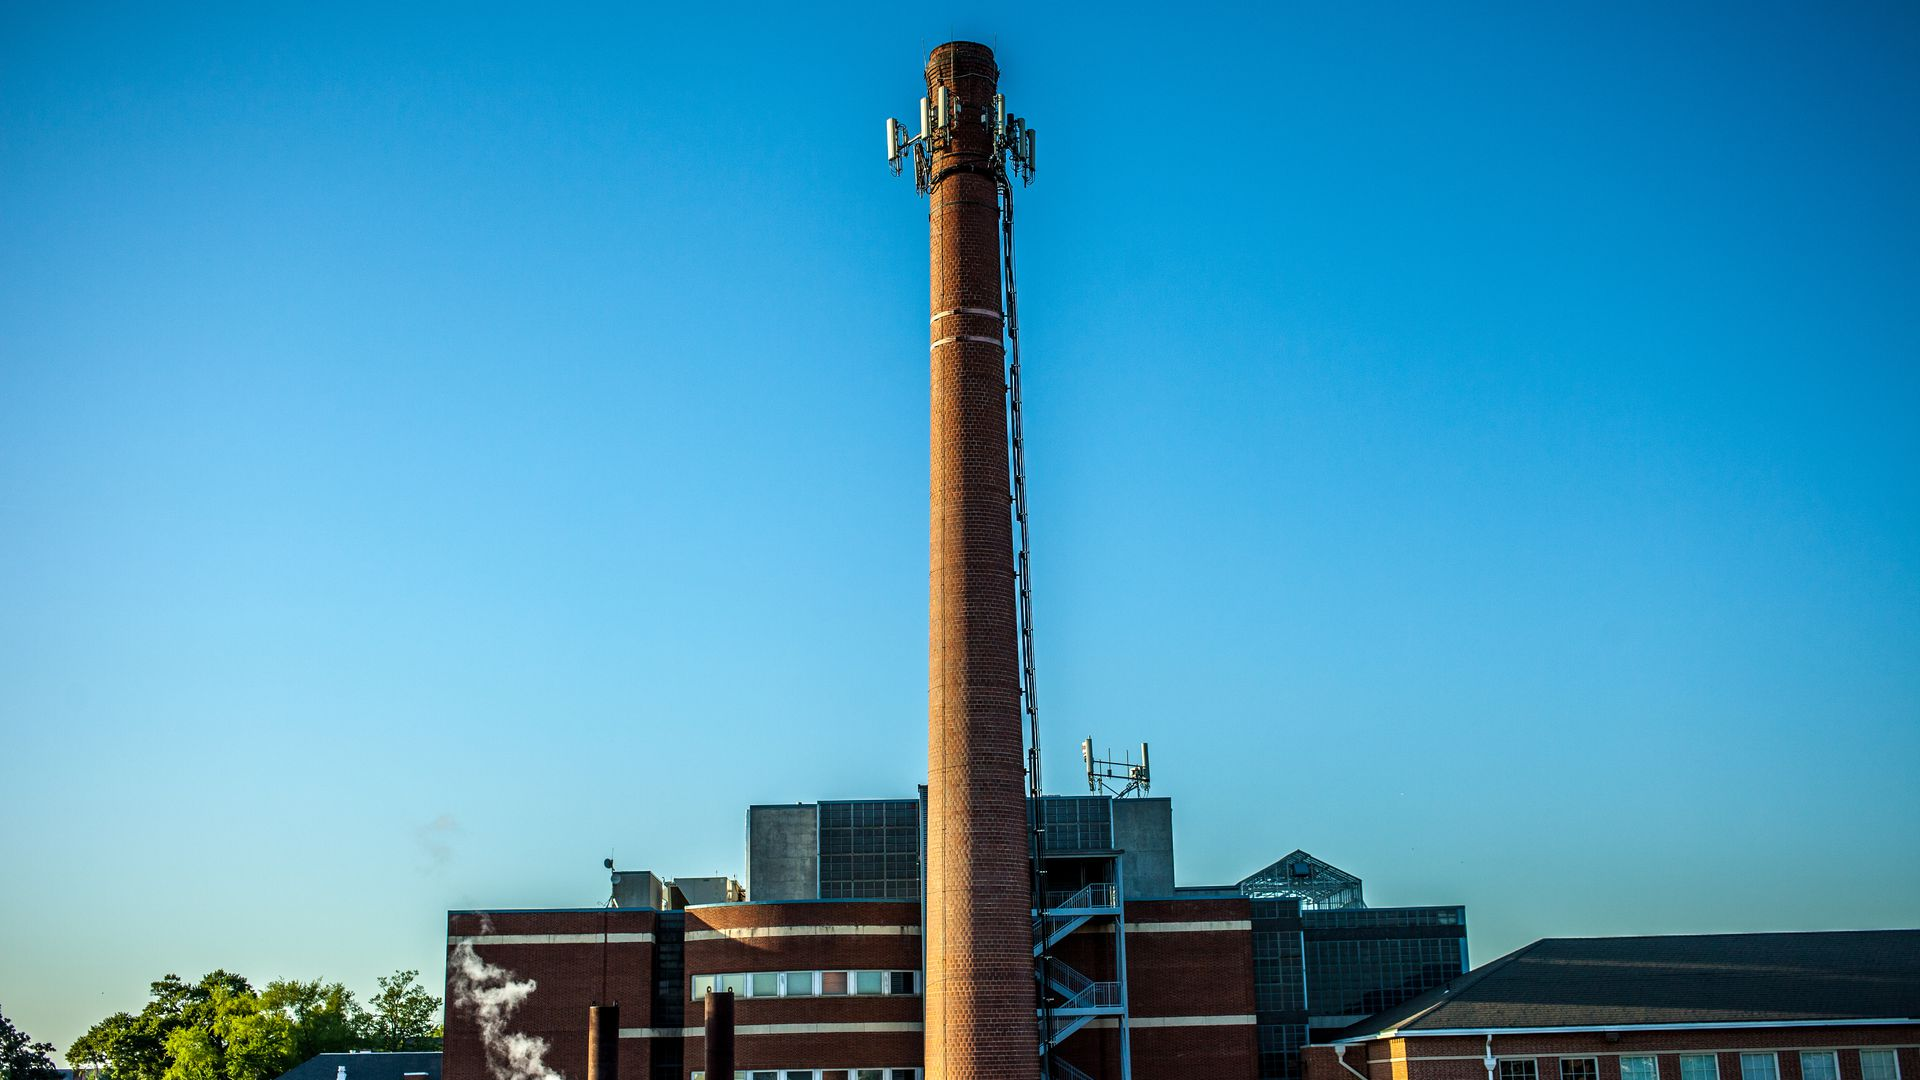 Smokestack at Moorehouse College